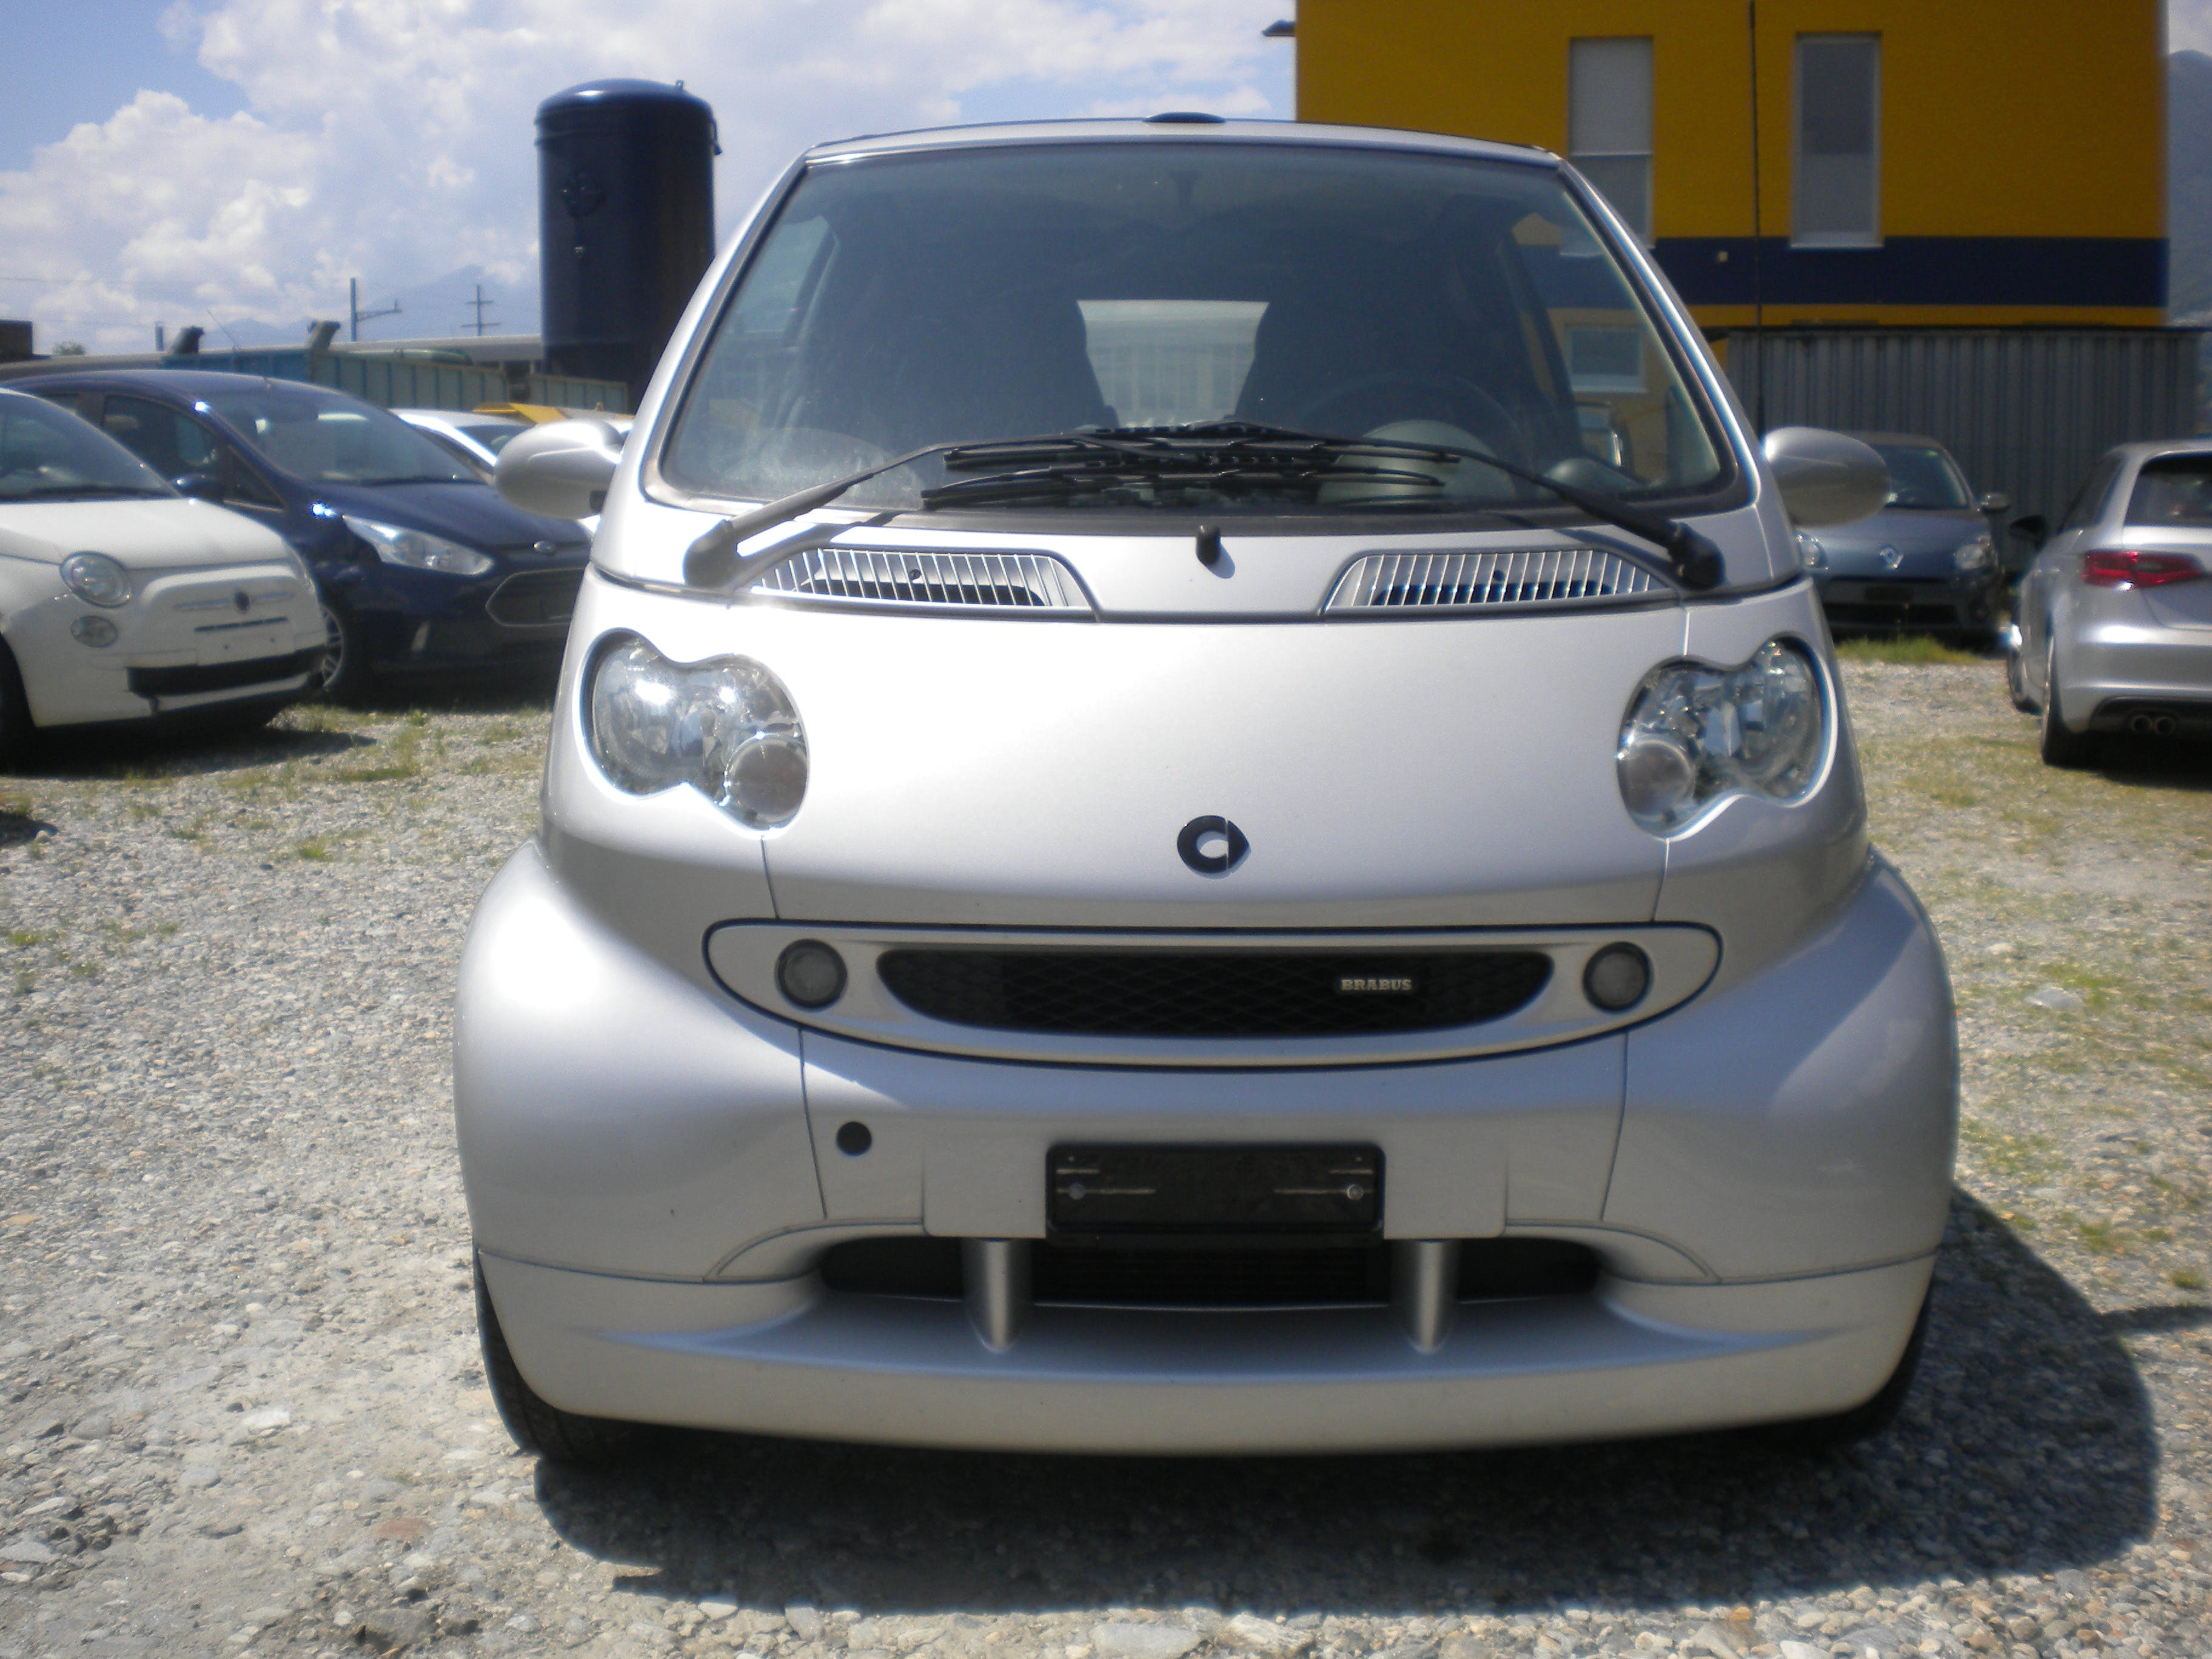 cabriolet Smart City/Fortwo Fortwo Cabrio 700 75 Brabus